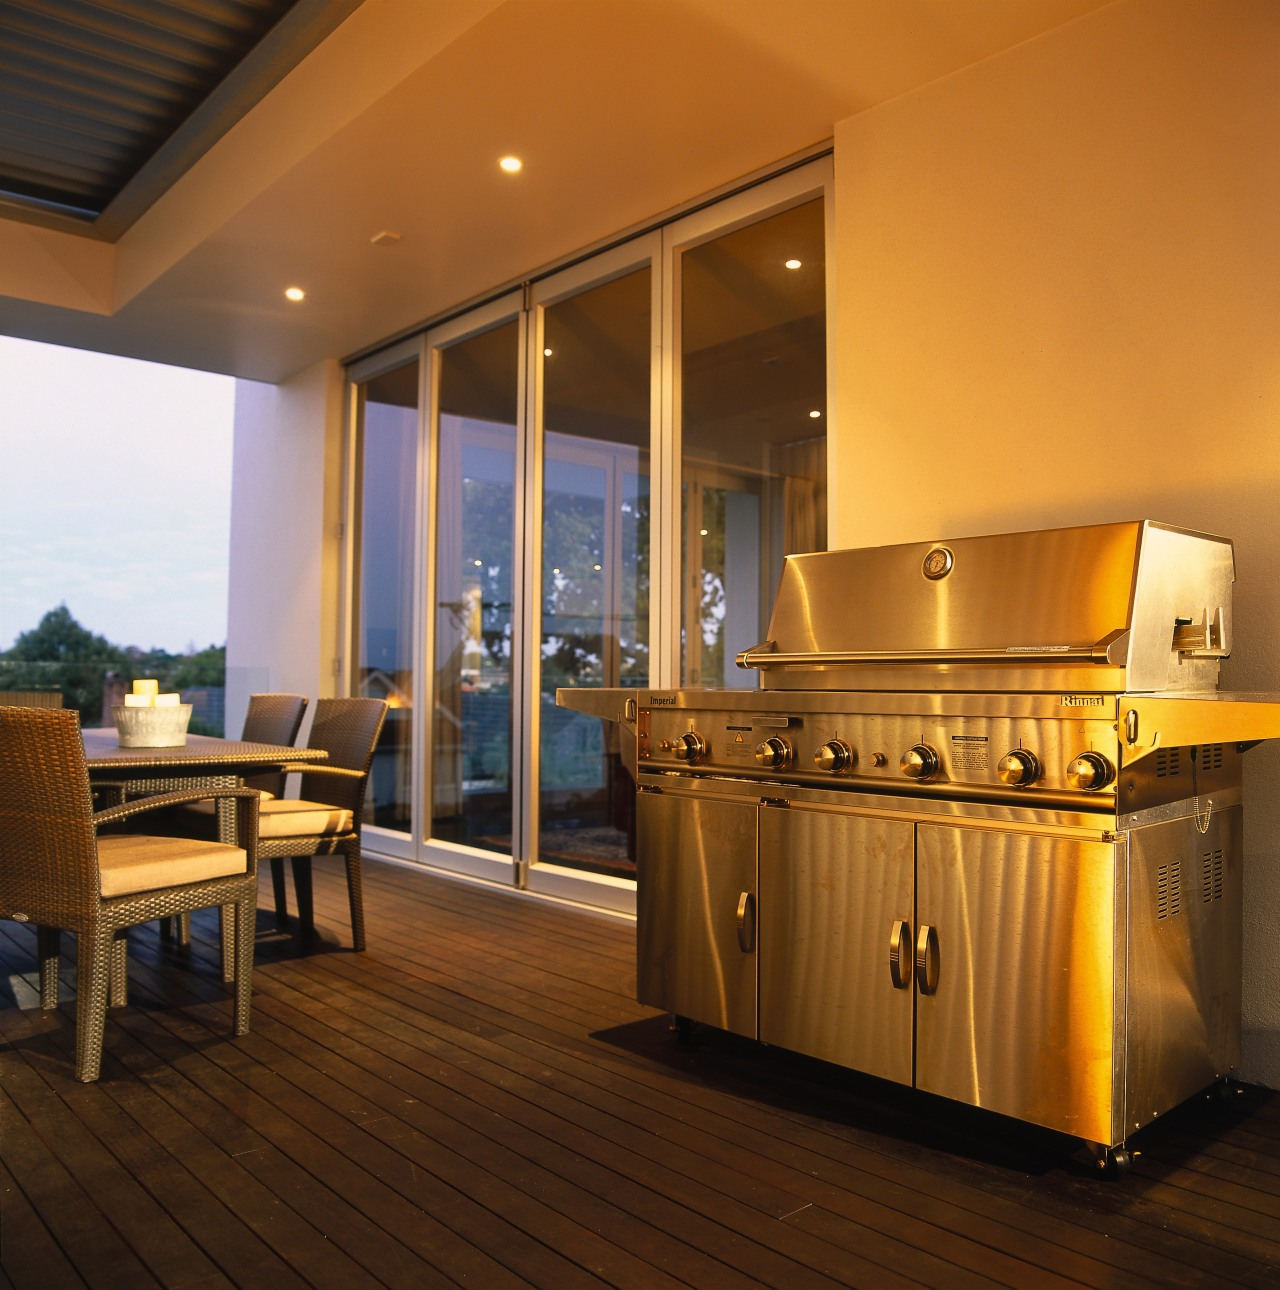 Patio area with large stainless steel barbeque, dining floor, flooring, interior design, lighting, real estate, brown